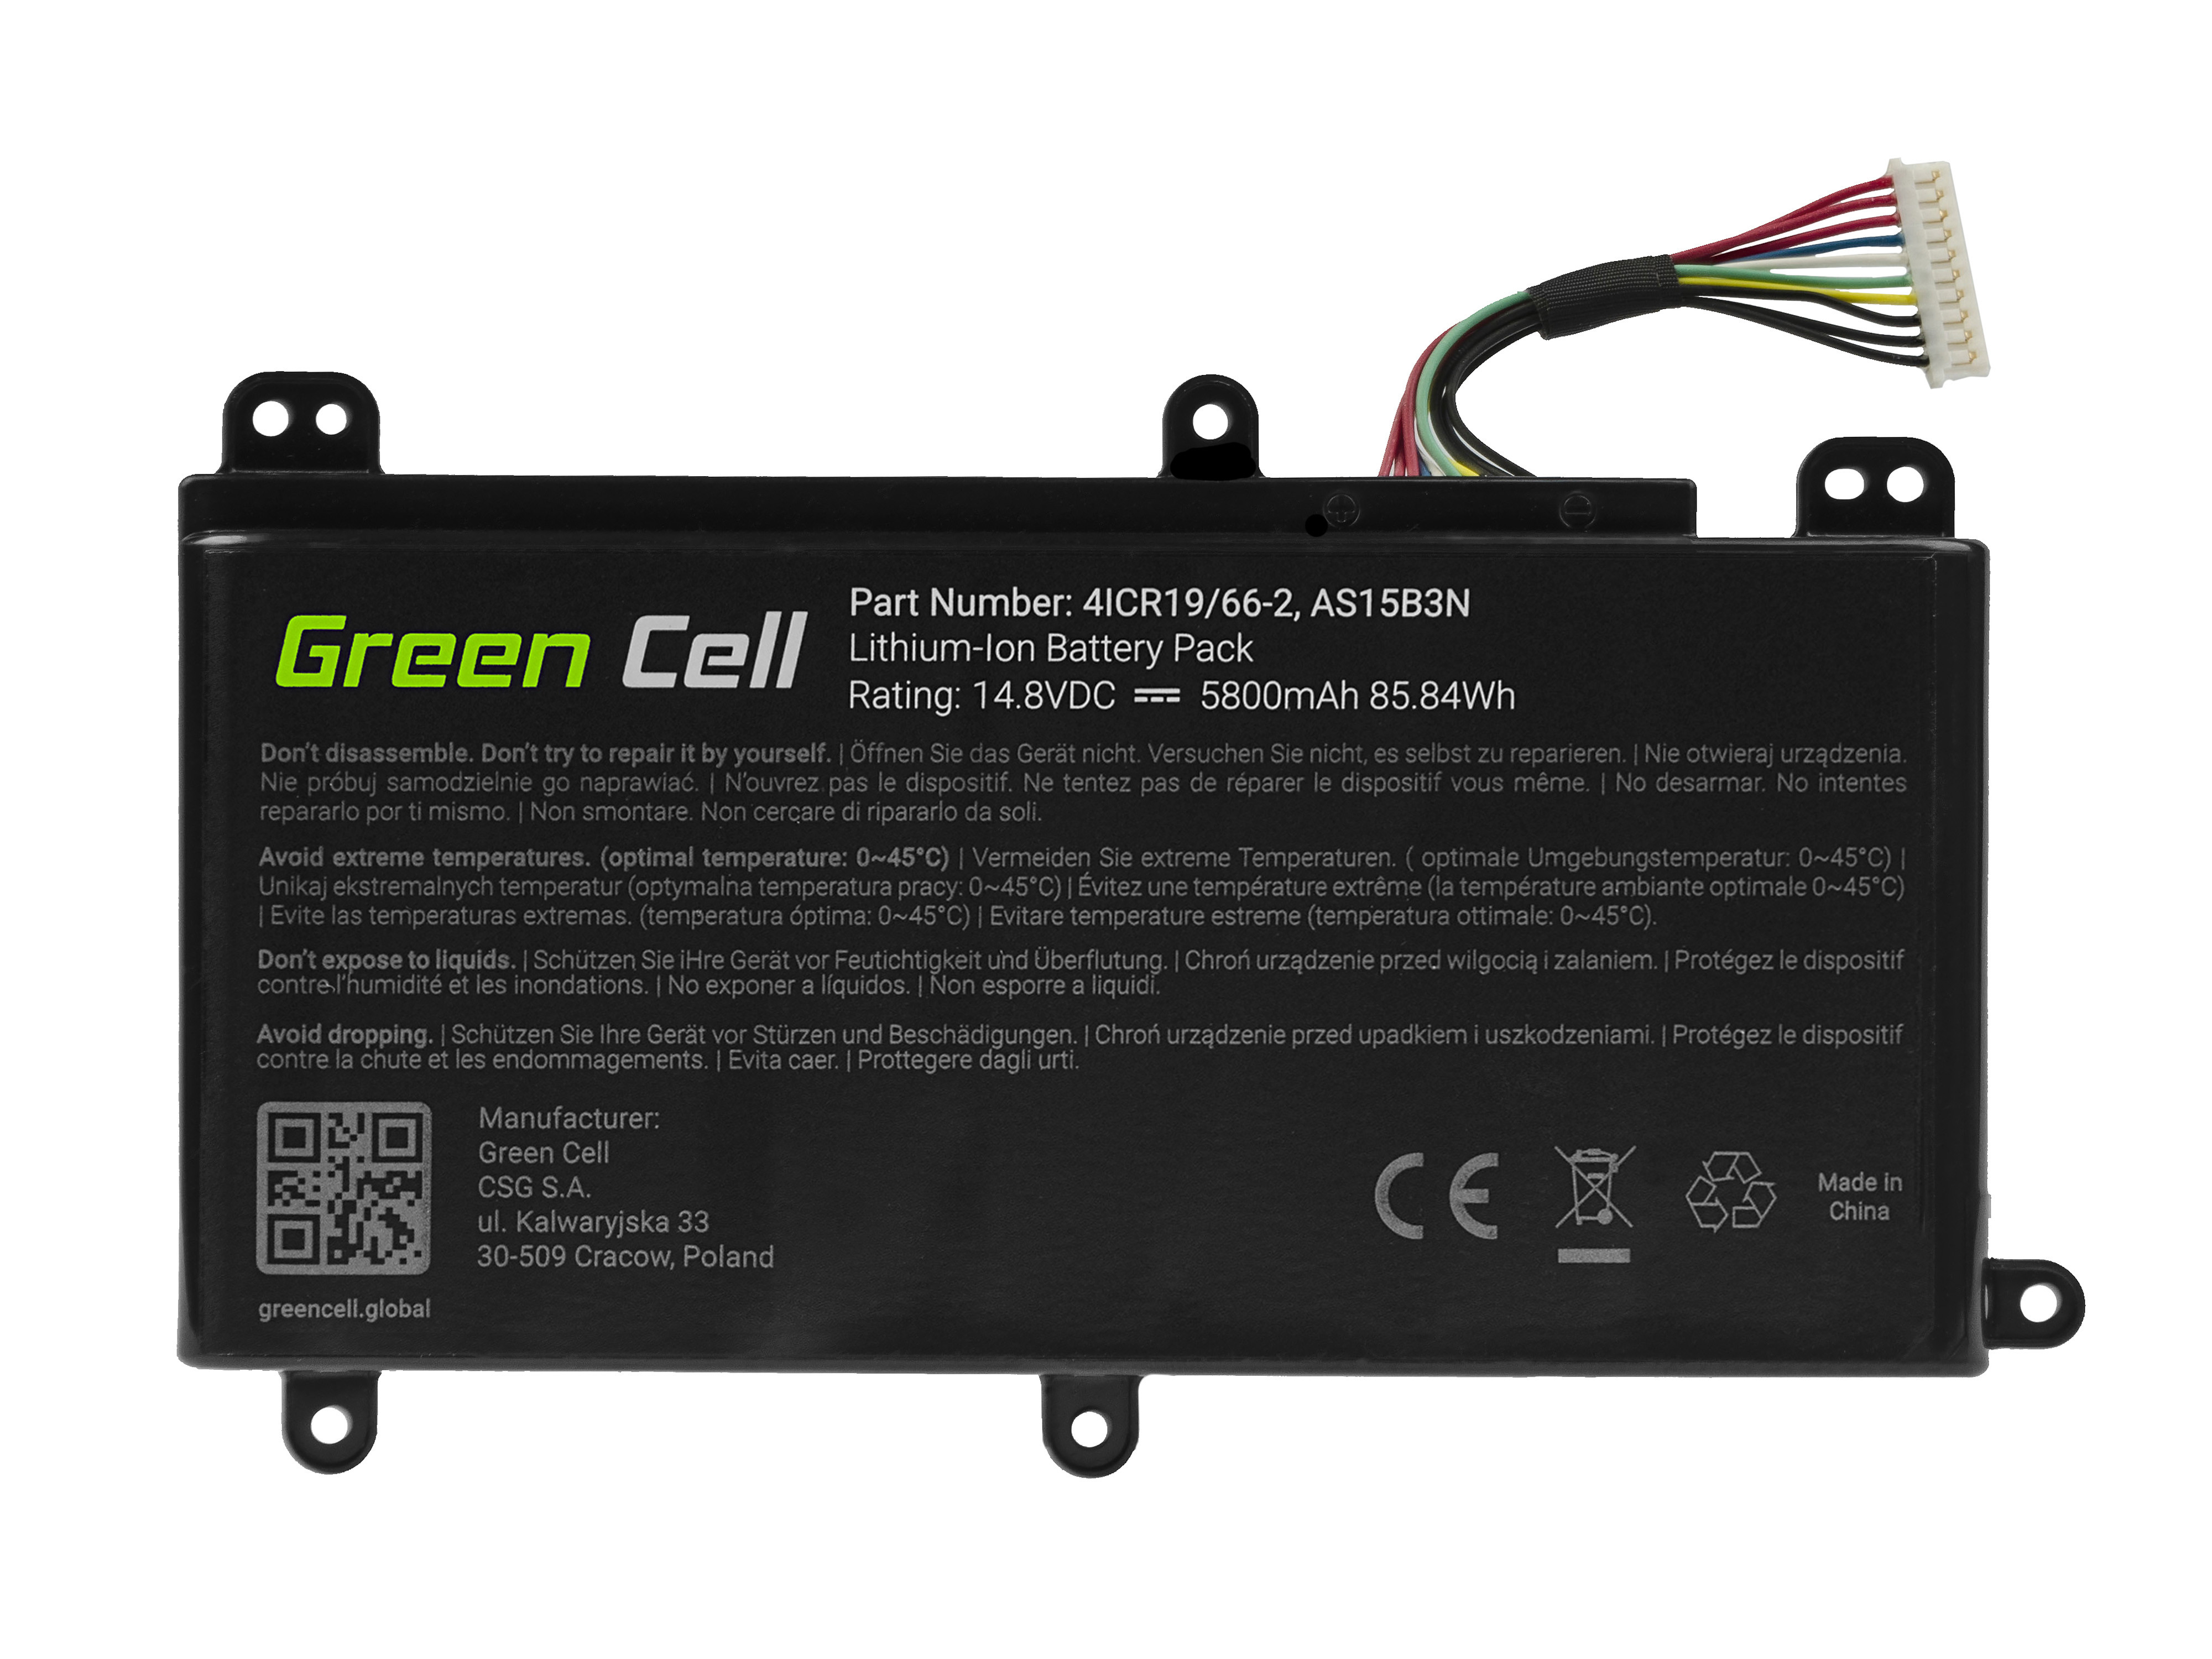 Green Cell AC74 Baterie Acer AS15B3N Acer Predator 15 G9-591 G9-592 G9-593 17 G9-791 G9-792 G9-793 17X GX-791 GX-792 21X 5800mAh Li-Pol – neoriginální